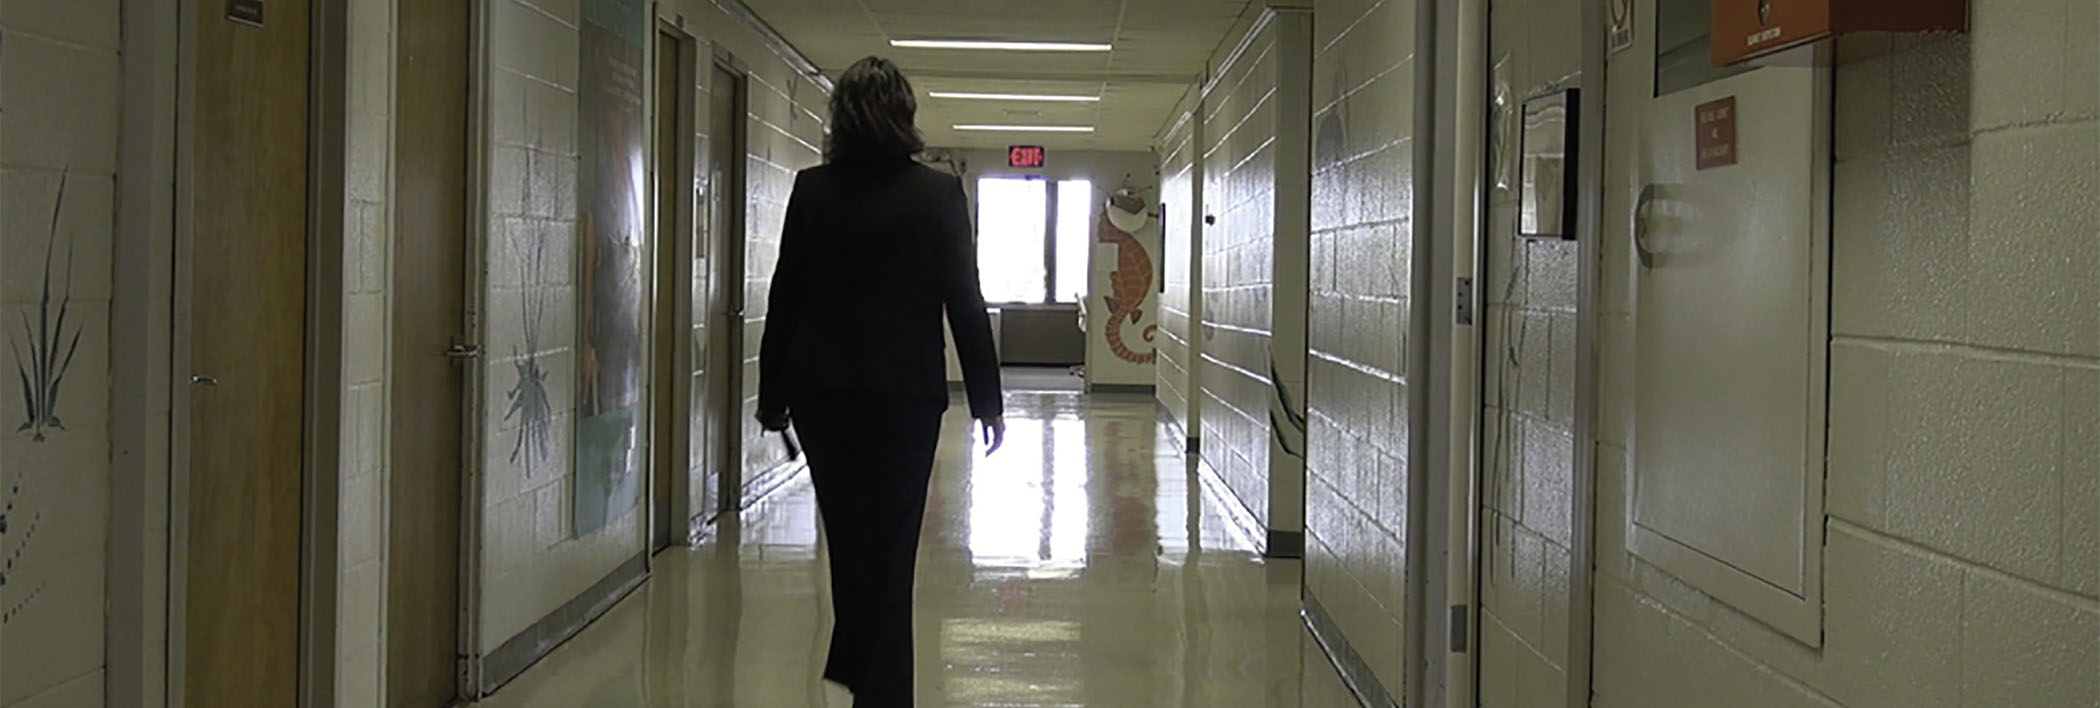 WIHD staff member walking down a hallway